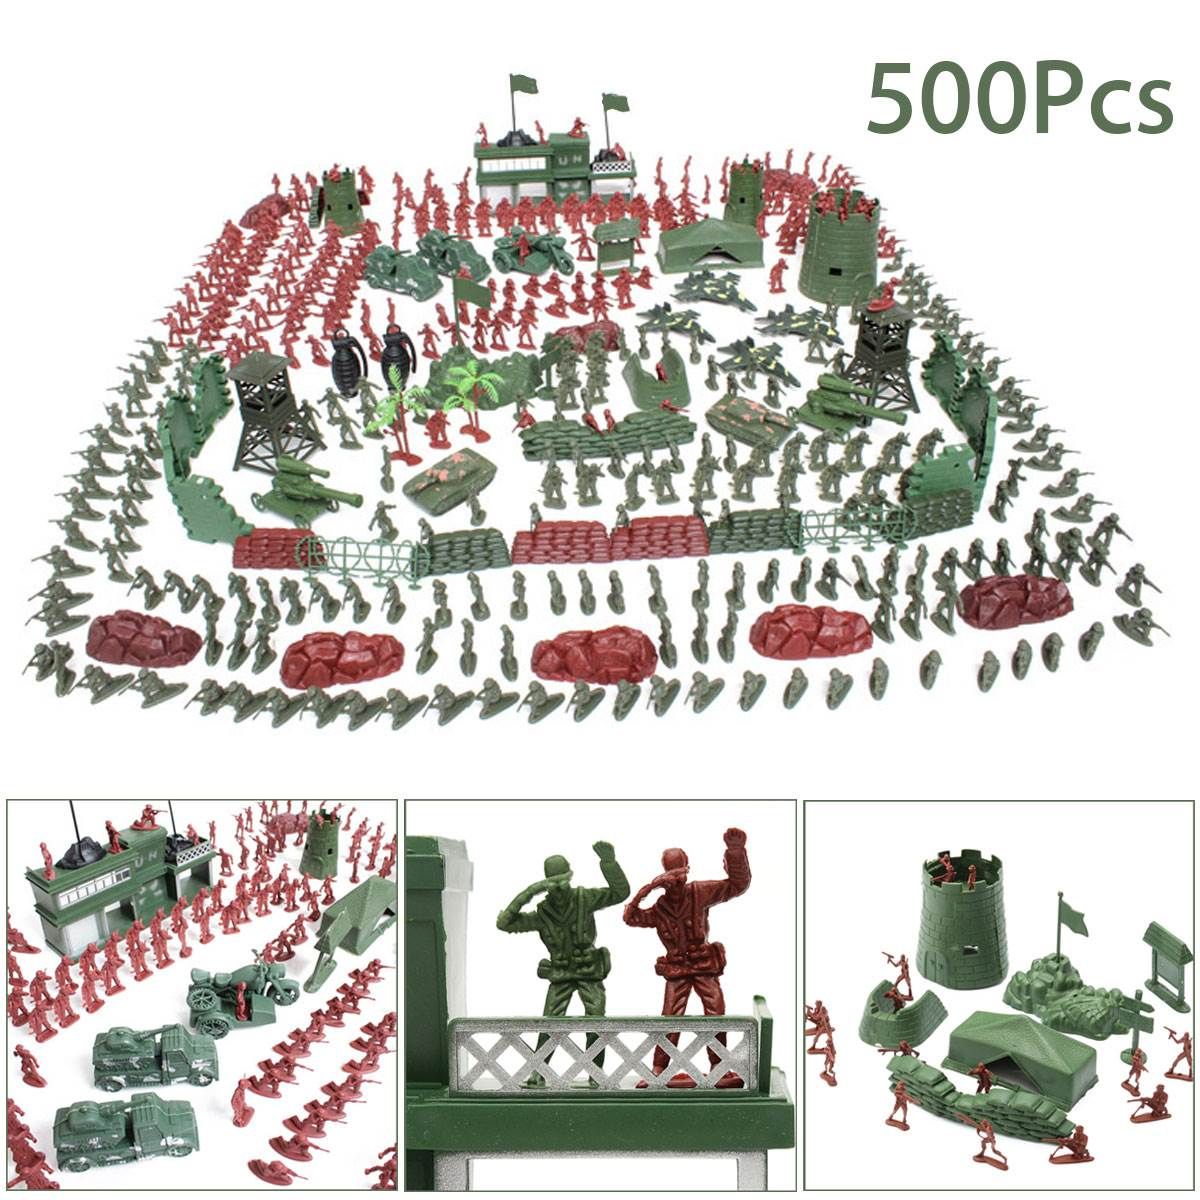 Best Toy And Model Soldiers For Kids : Pcs set military soldier toy kit army men cm figures